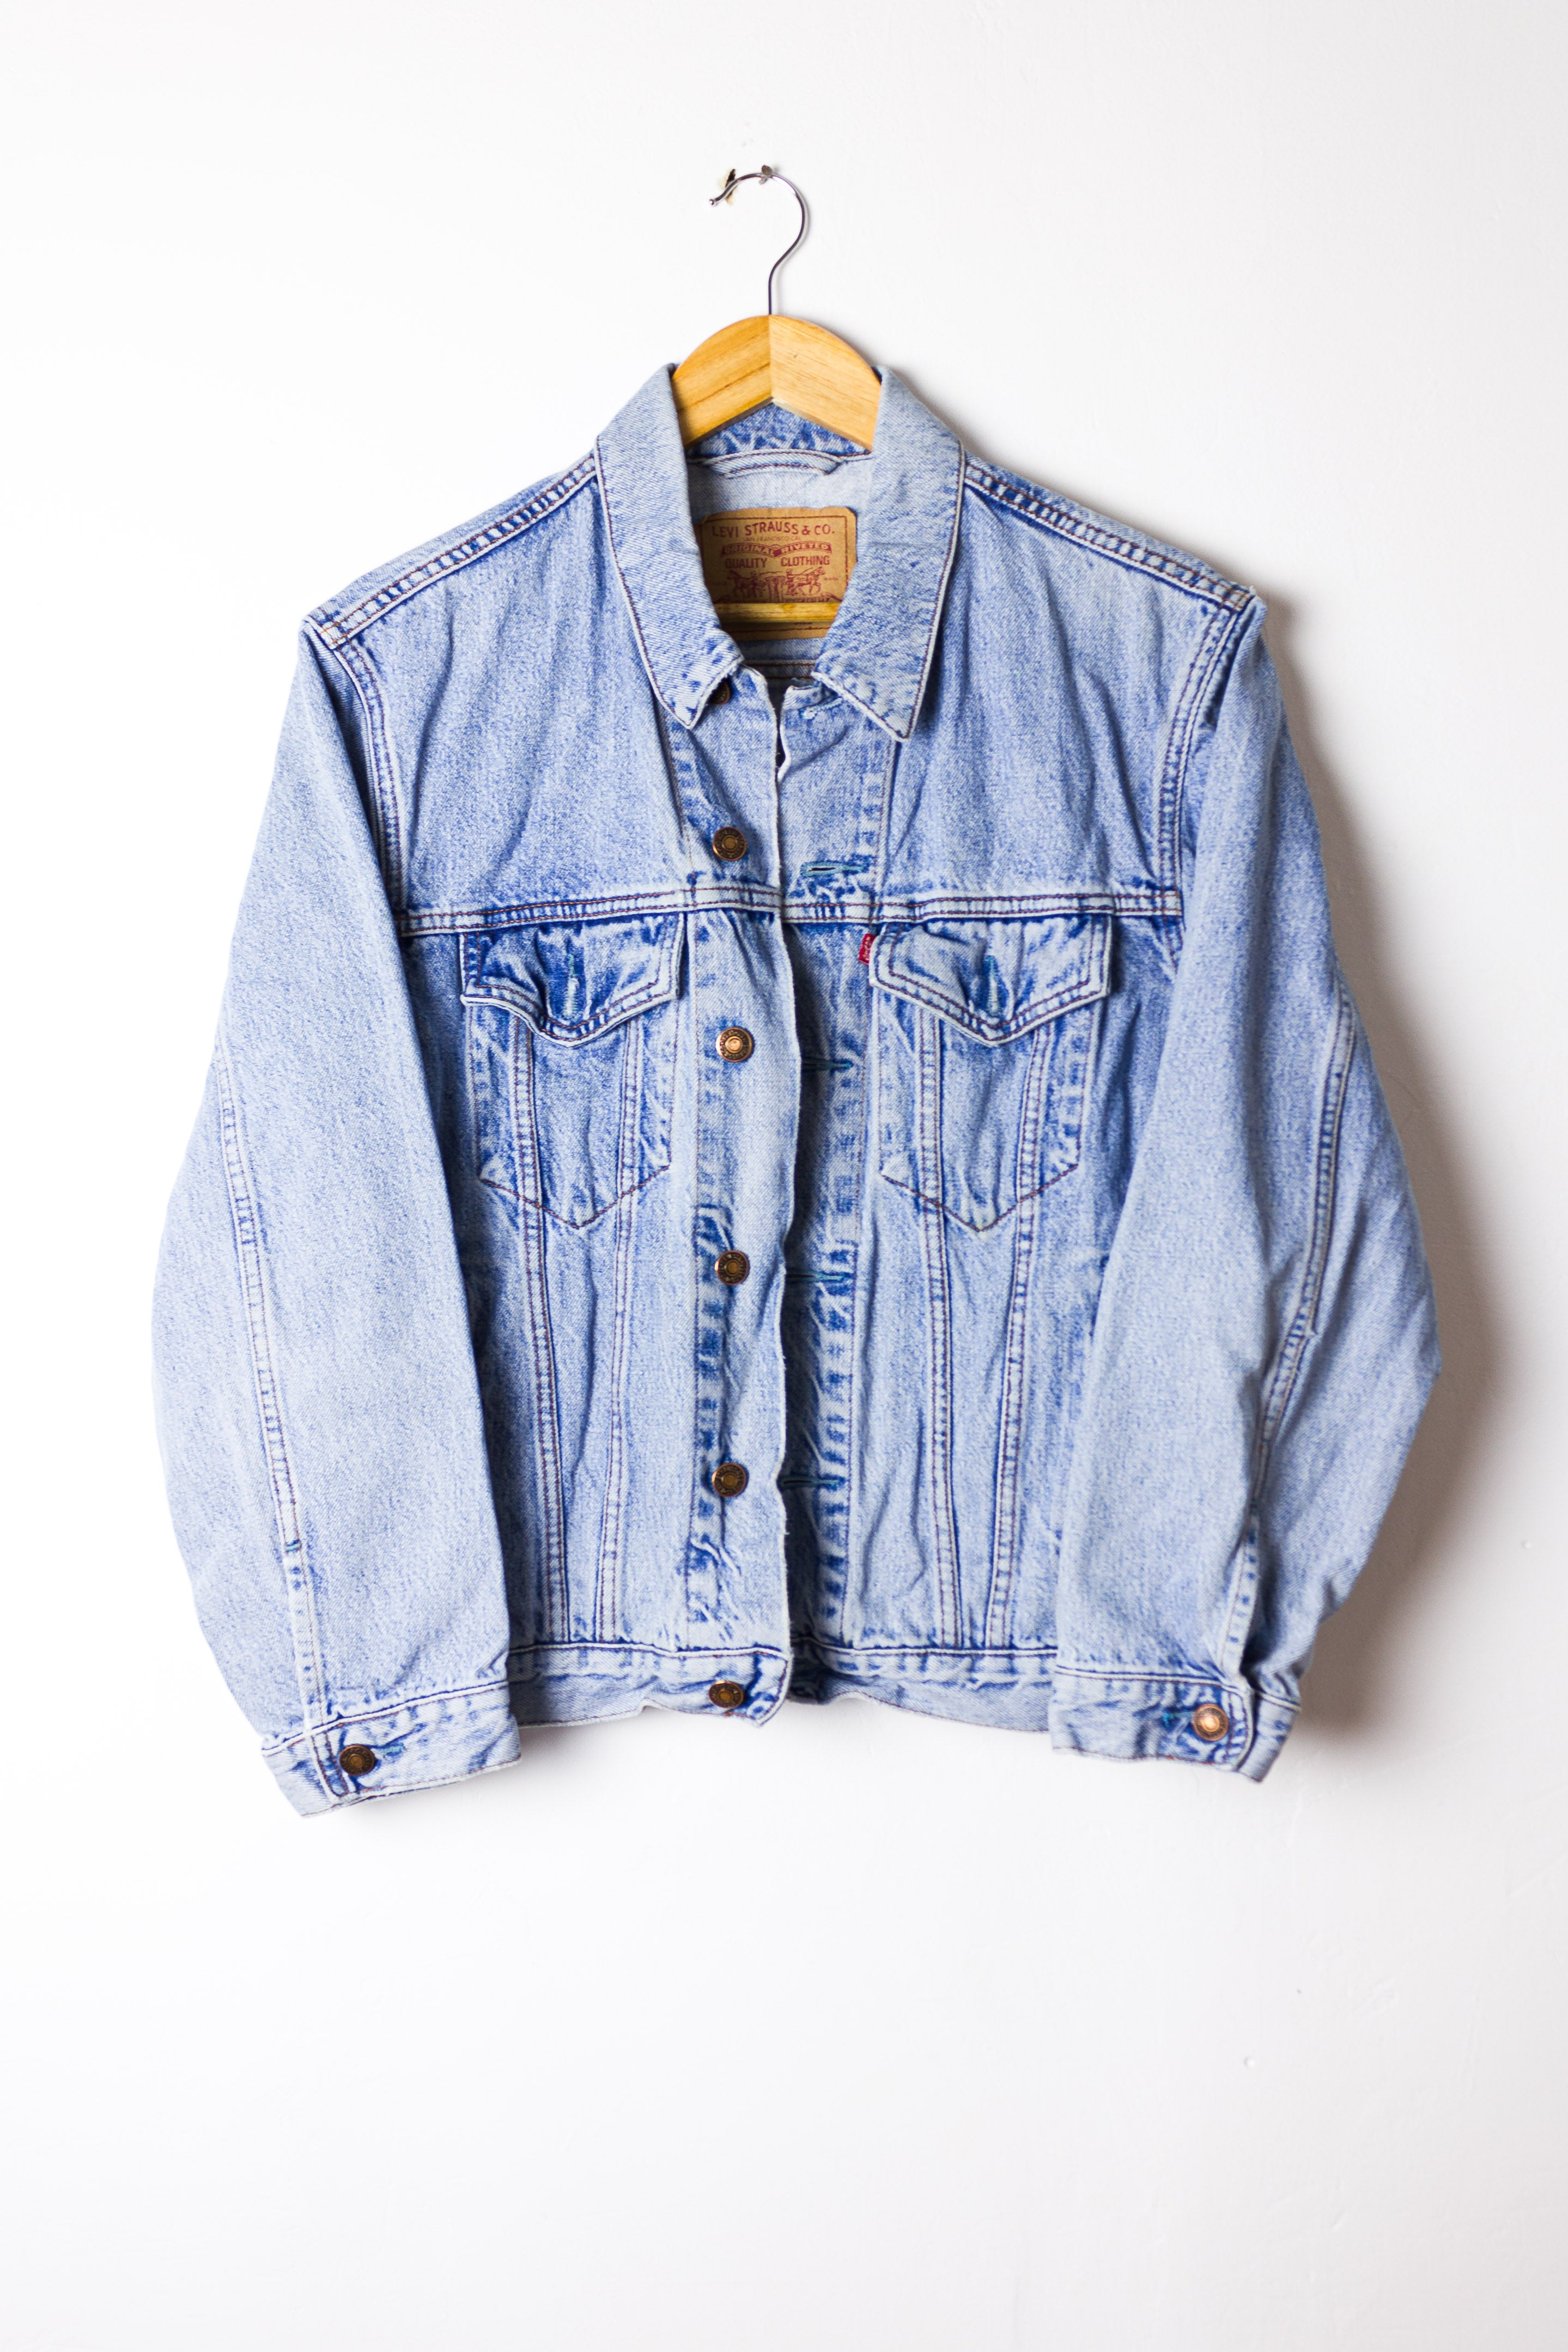 Vintage Levis Denim Jacket Size S